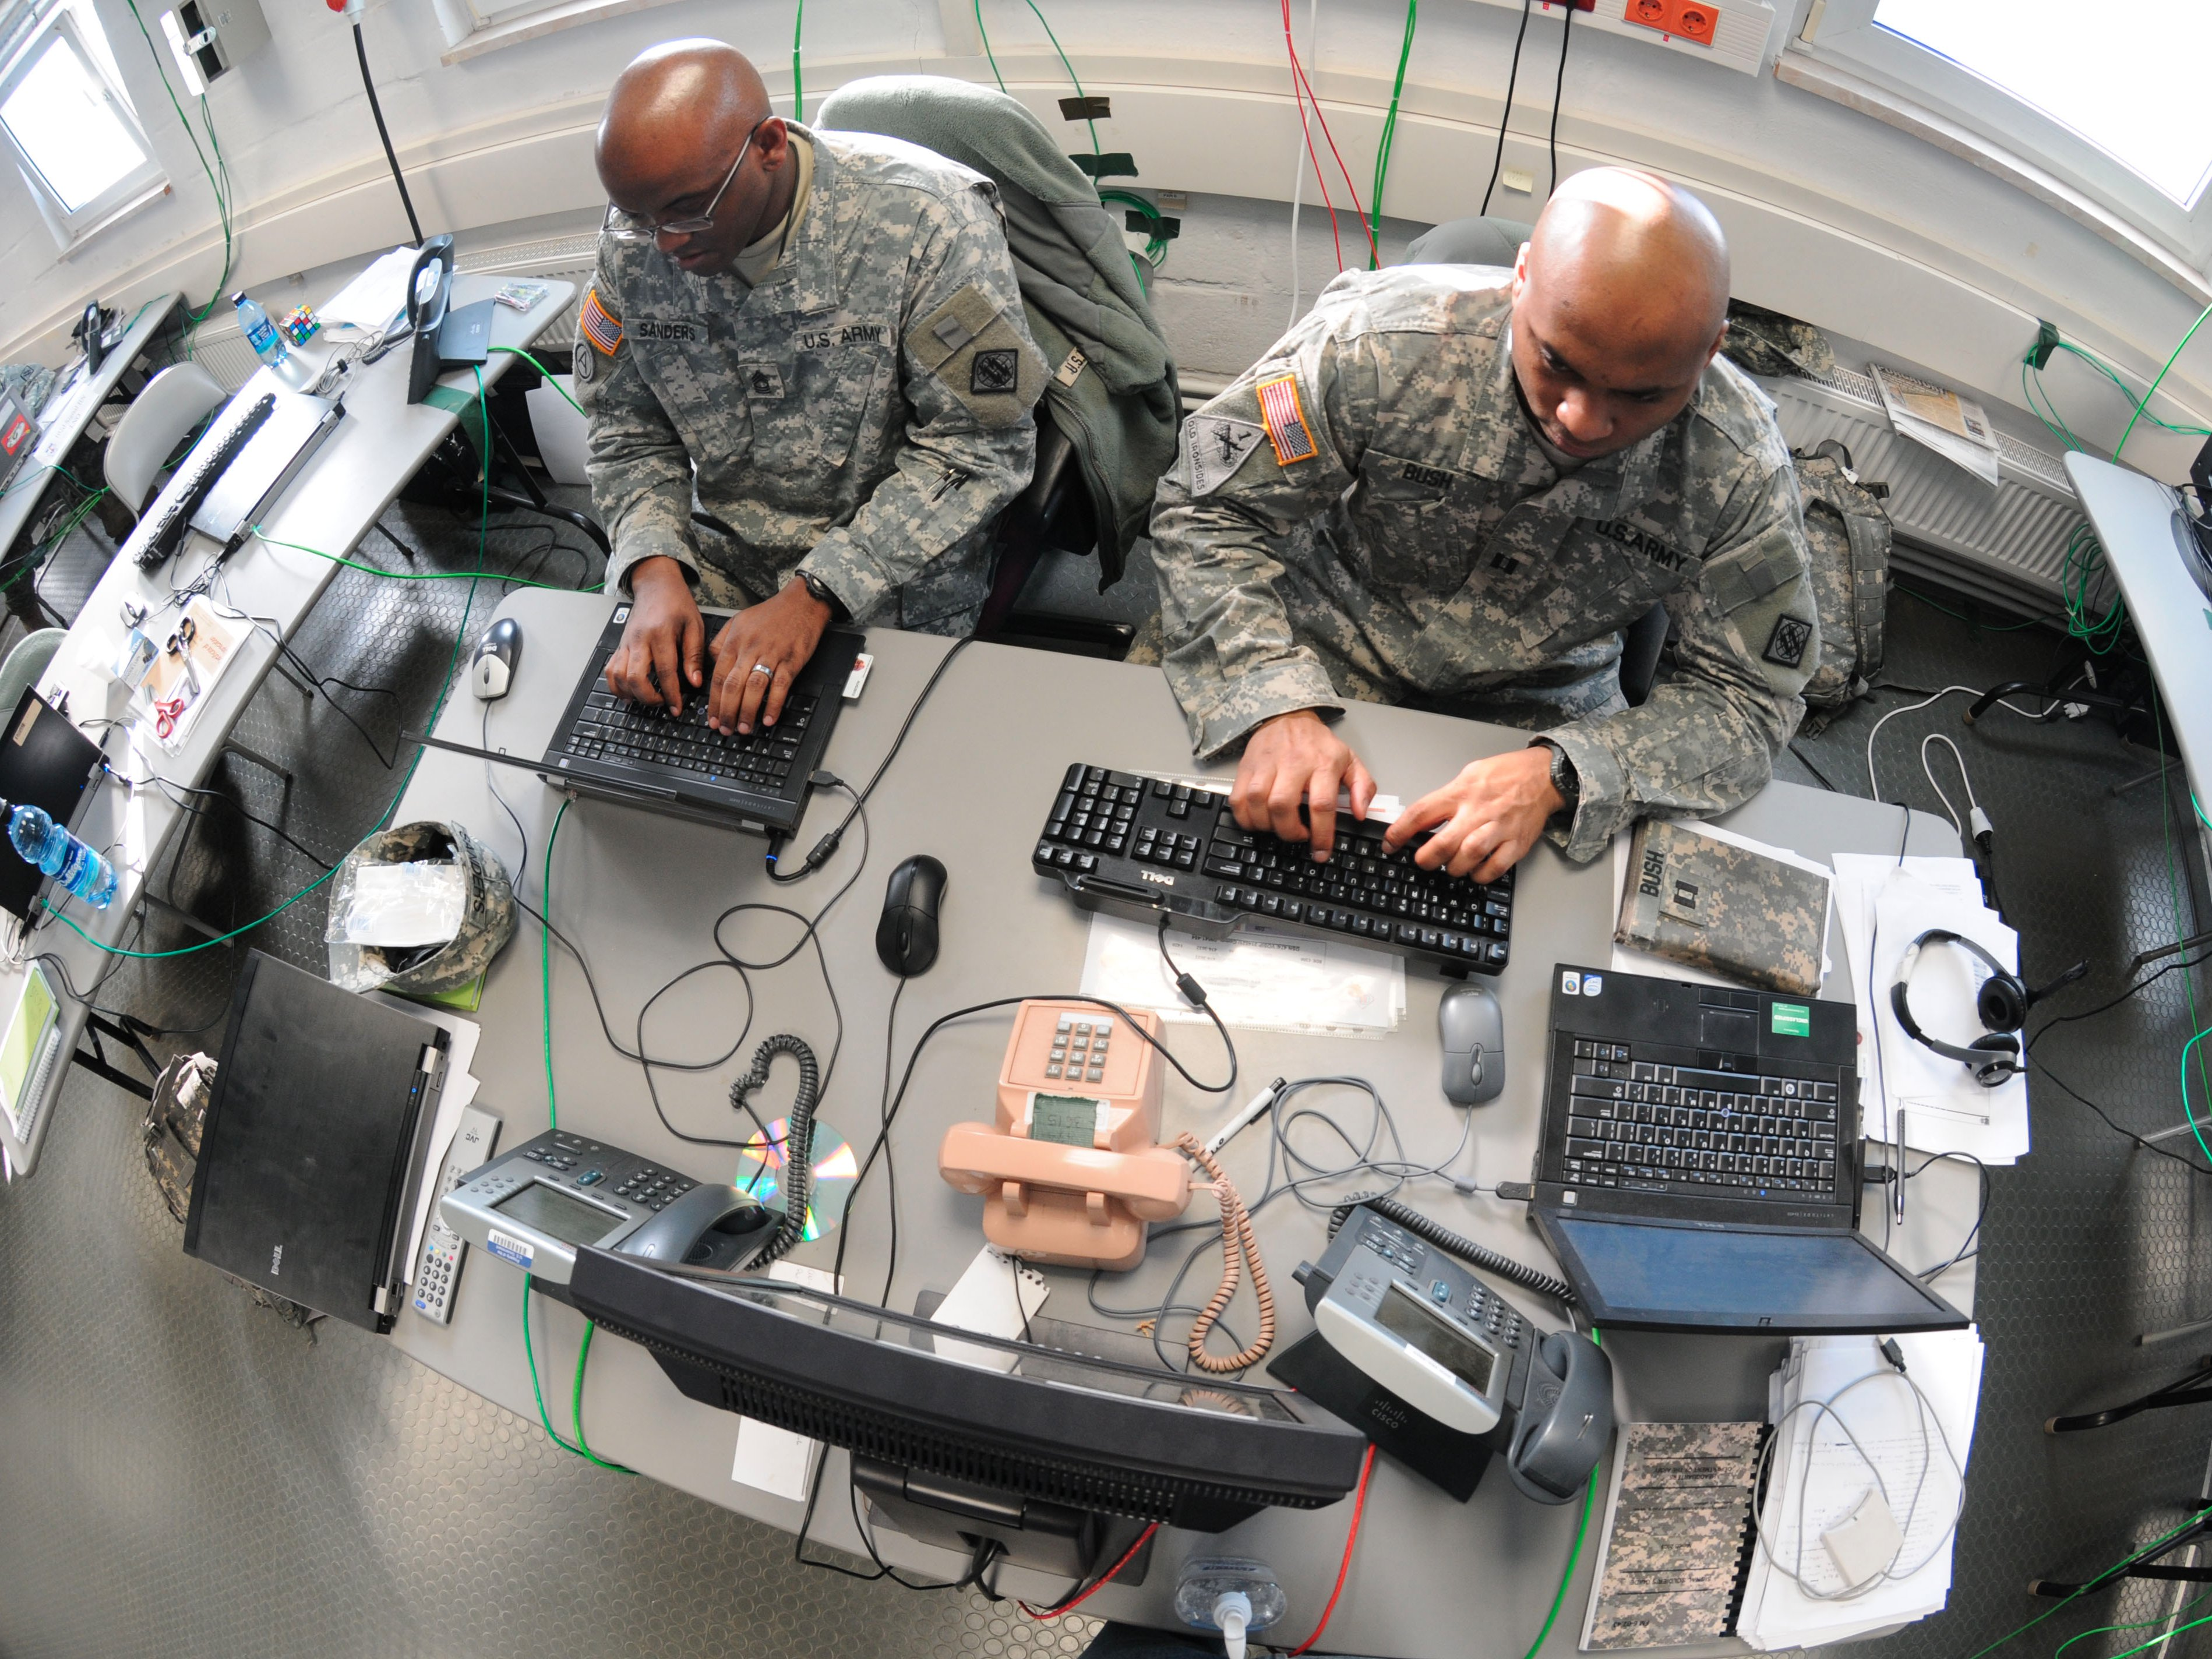 a review of the cyber space laws in the united states Sophisticated cyber actors and nation-states exploit vulnerabilities to steal information and money and are developing capabilities to disrupt, destroy, or threaten the delivery of essential services.